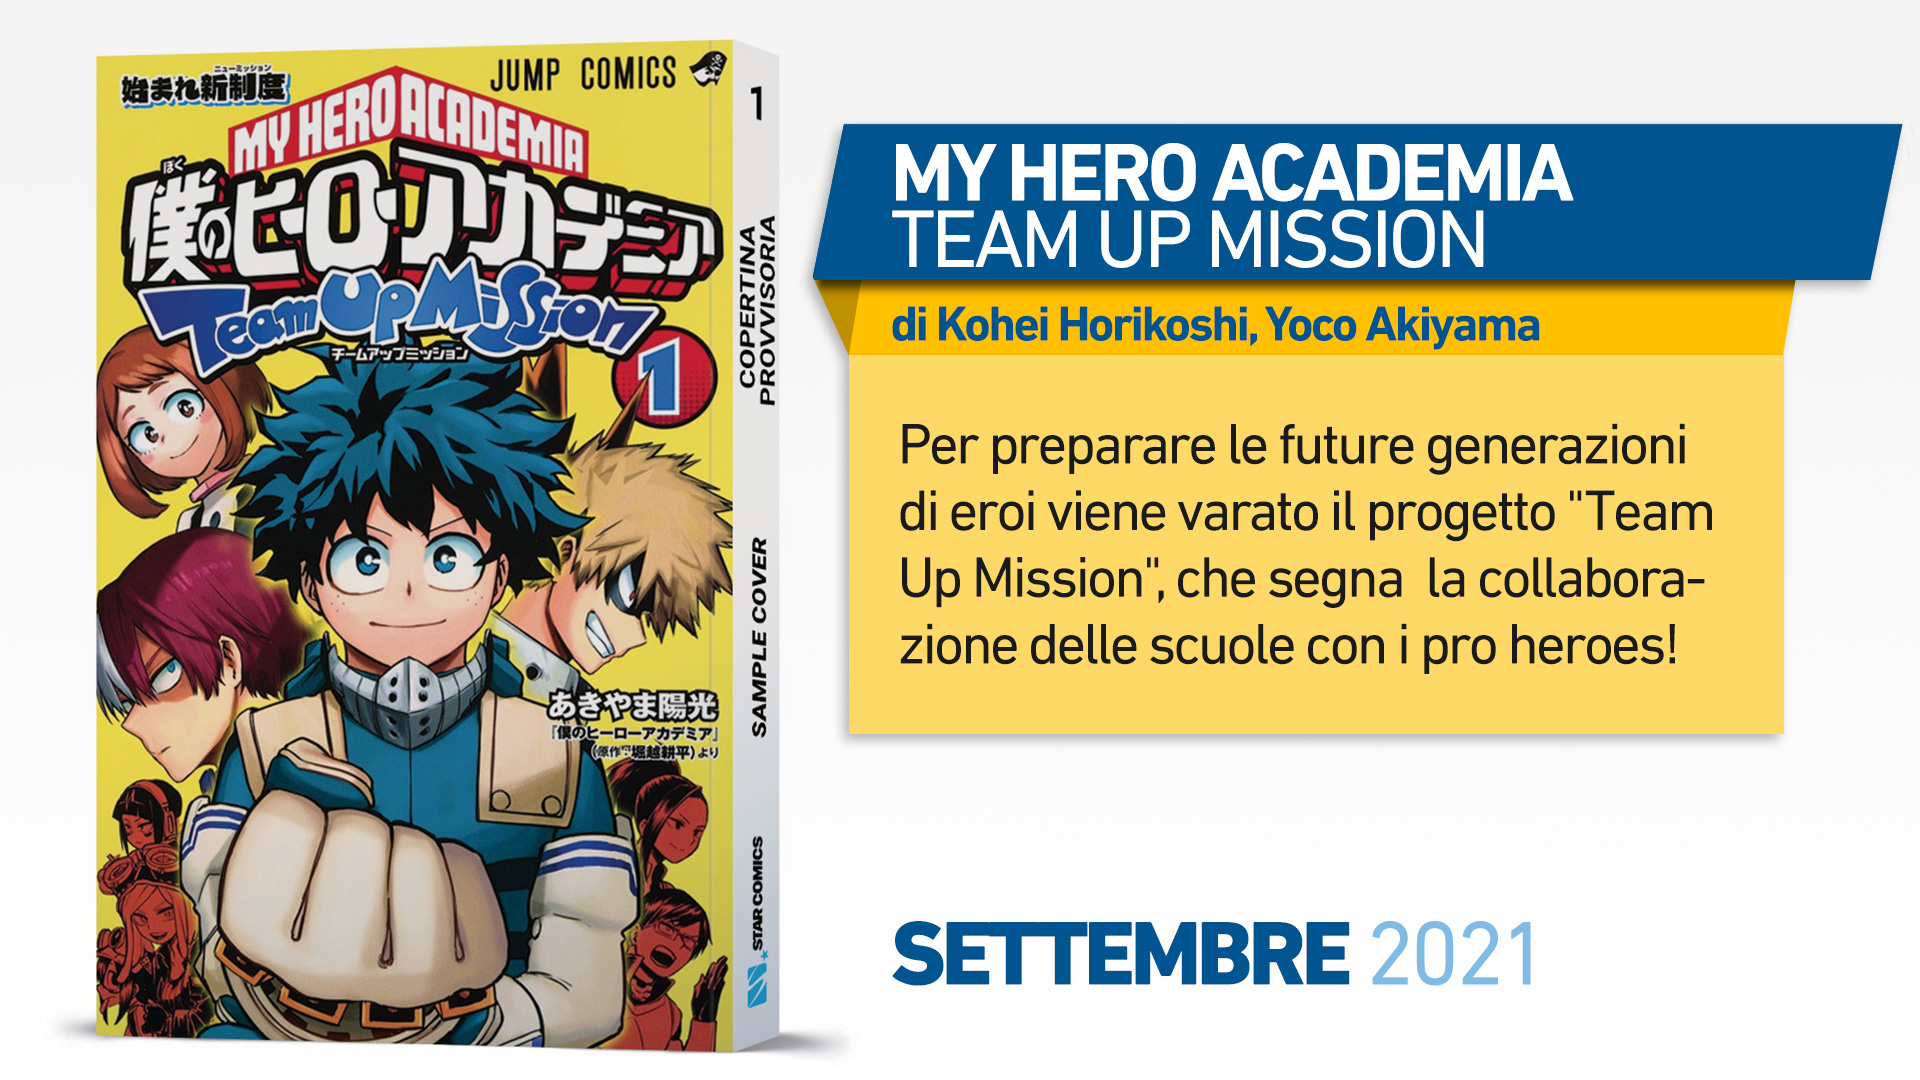 MY HERO ACADEMIA TEAM UP MISSION